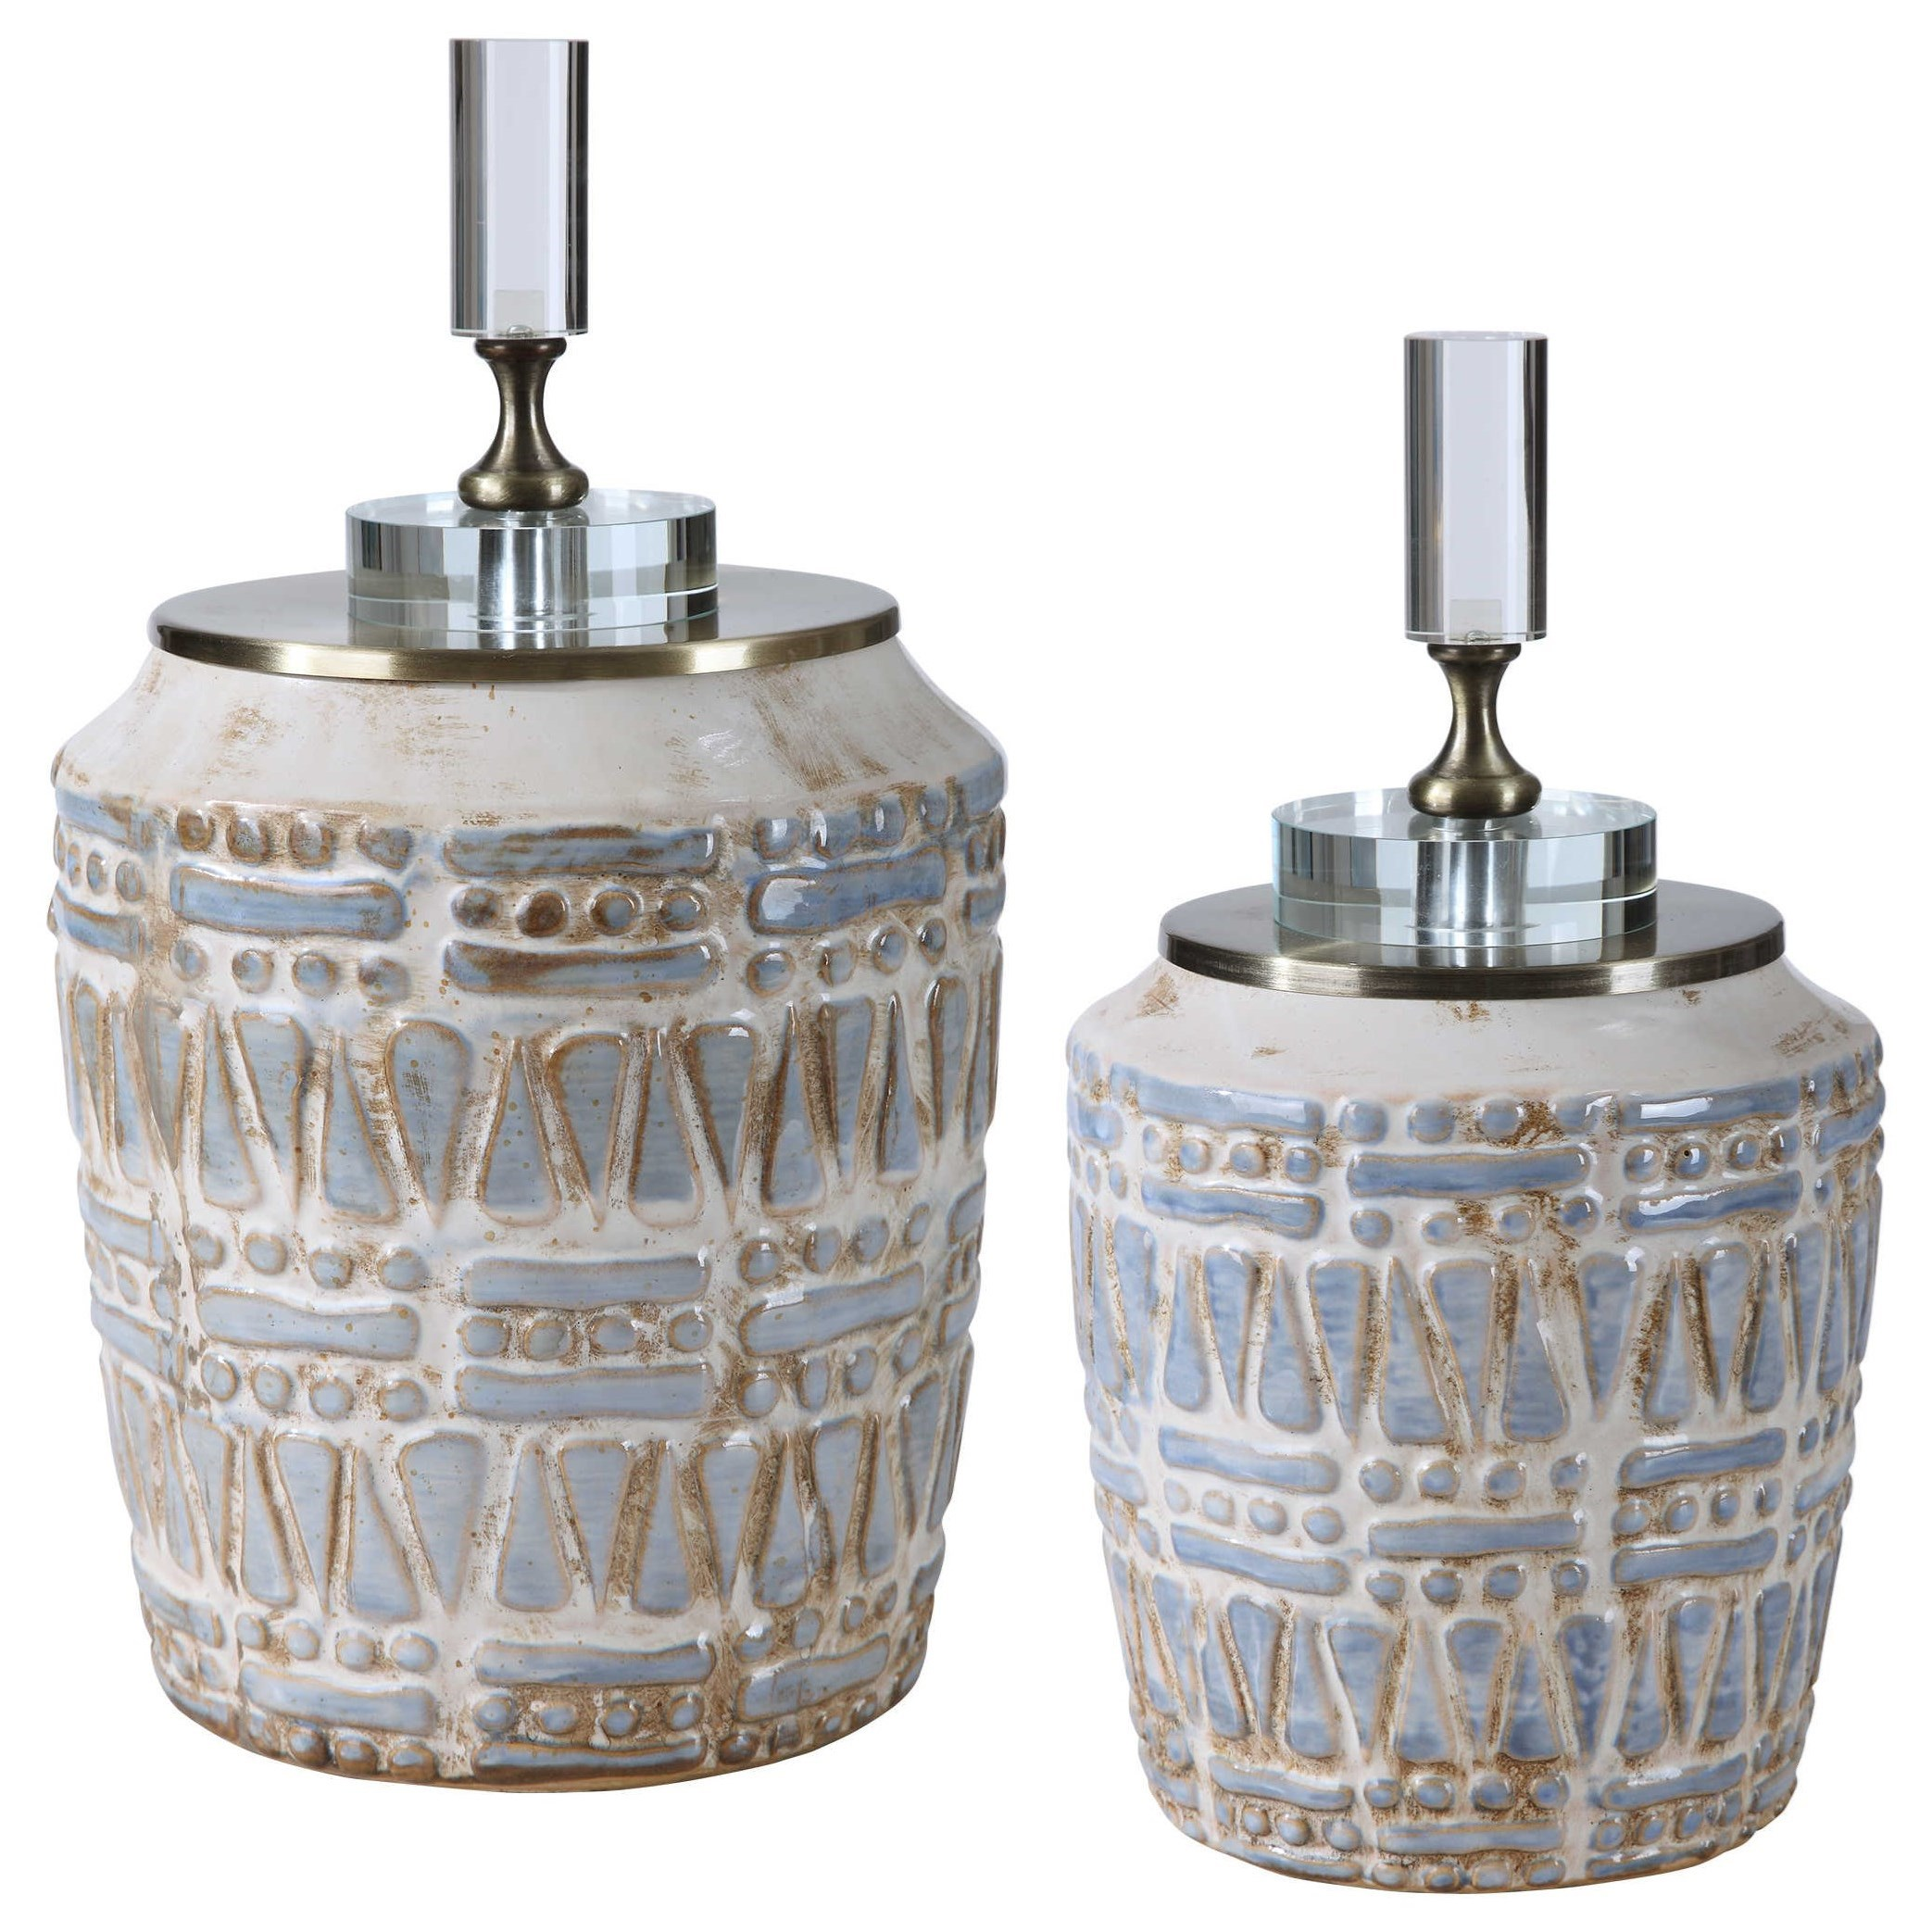 Accessories Lenape Ceramic Bottles, S/2 by Uttermost at Del Sol Furniture